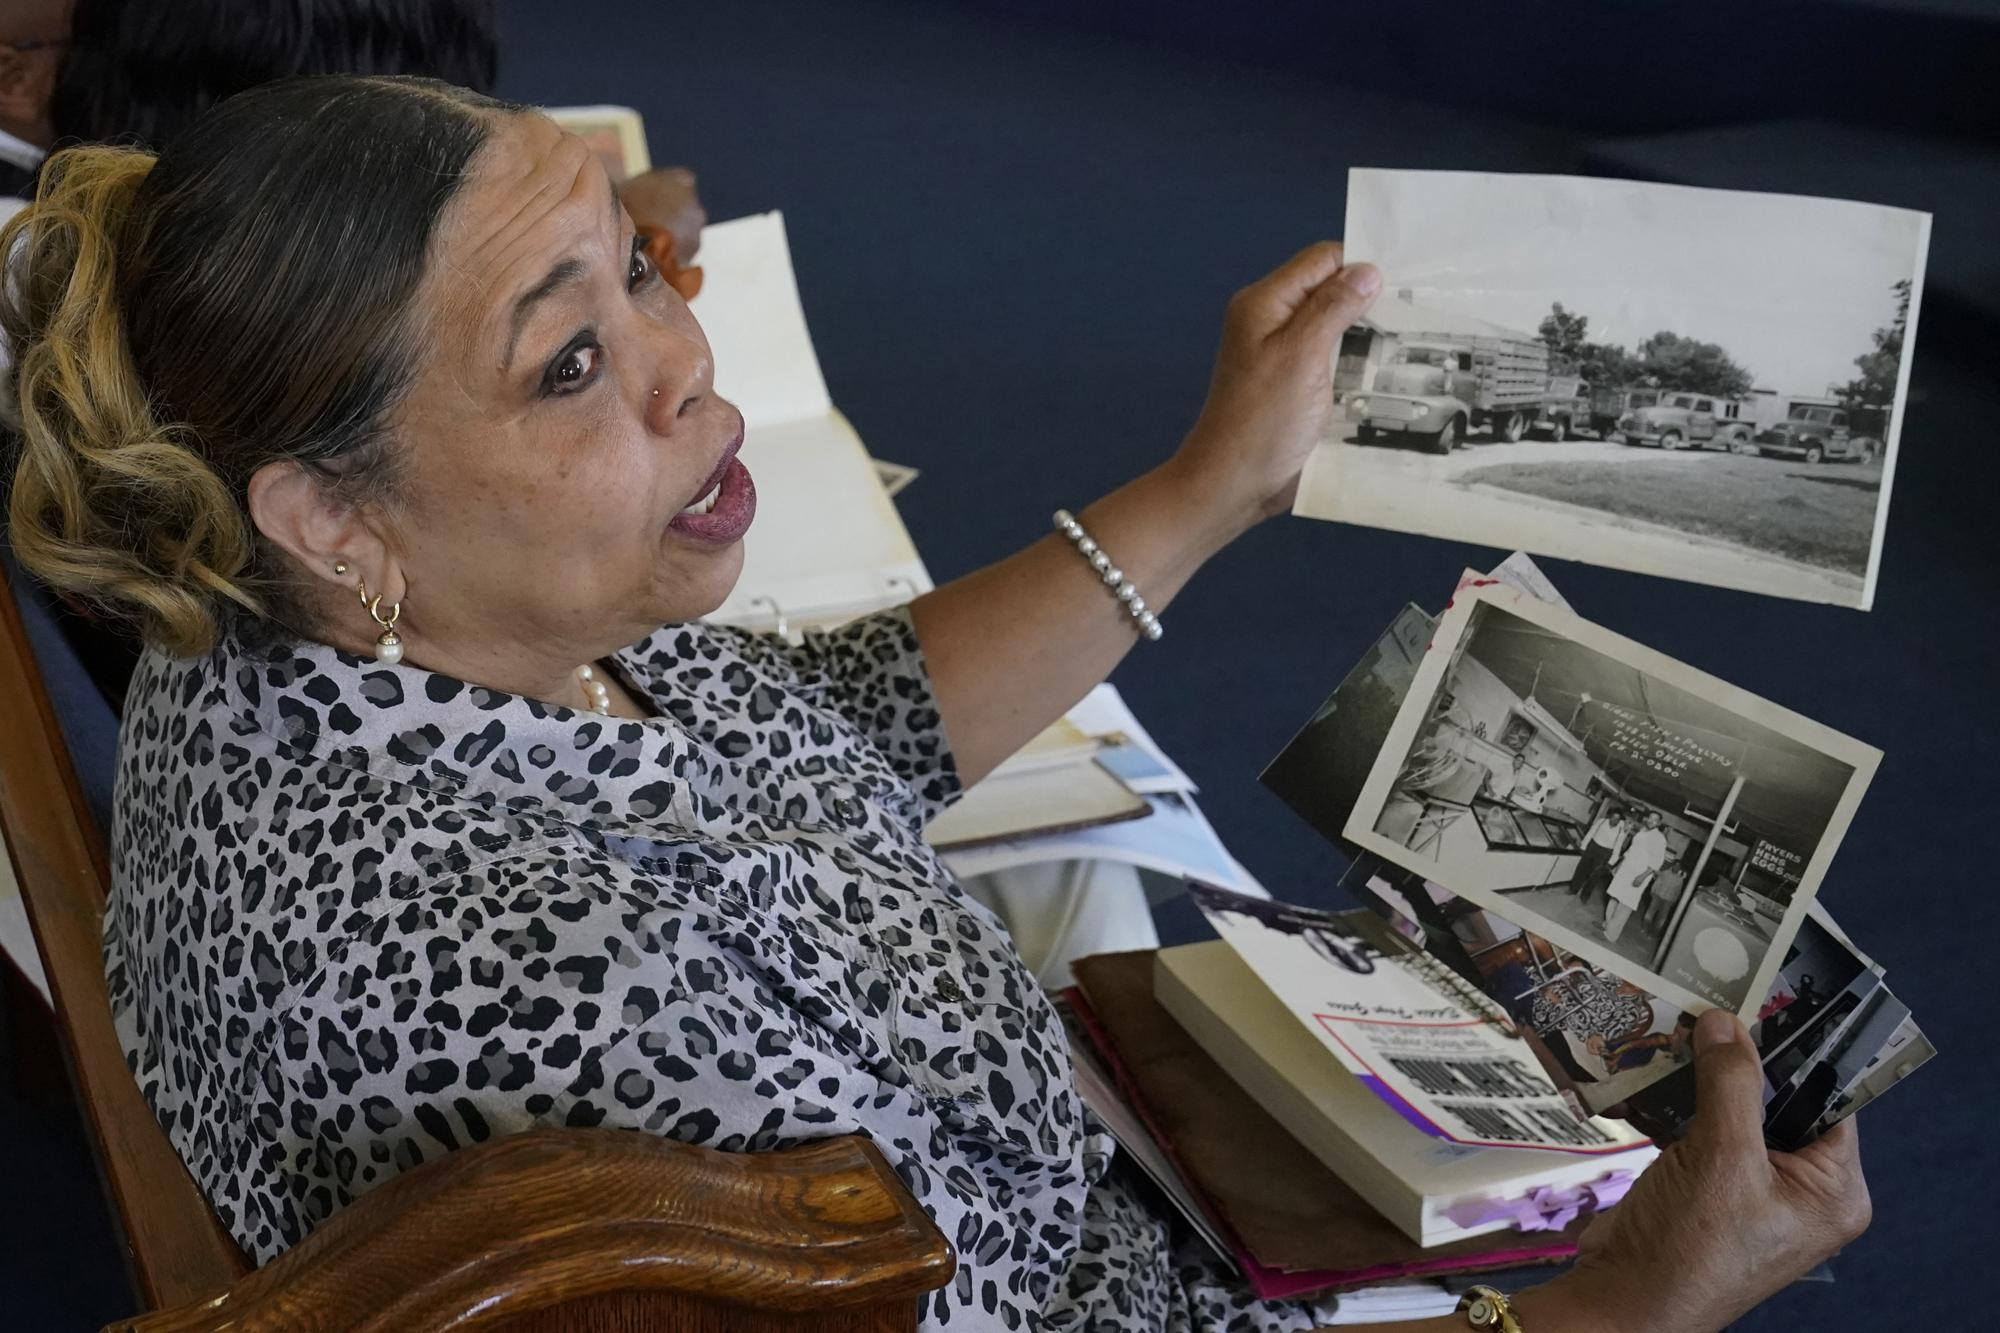 """Carolyn Roberts, daughter of Tulsa Race Massacre survivor Ernestine Alpha Gibbs, holds family photos of the Gibbs family business during an interview in Tulsa, Okla., on Sunday, April 11, 2021. Roberts said although her parents lived with the trauma of the massacre, it never hindered their work ethic: """"They survived the whole thing and bounced back."""" (AP Photo/Sue Ogrocki)"""